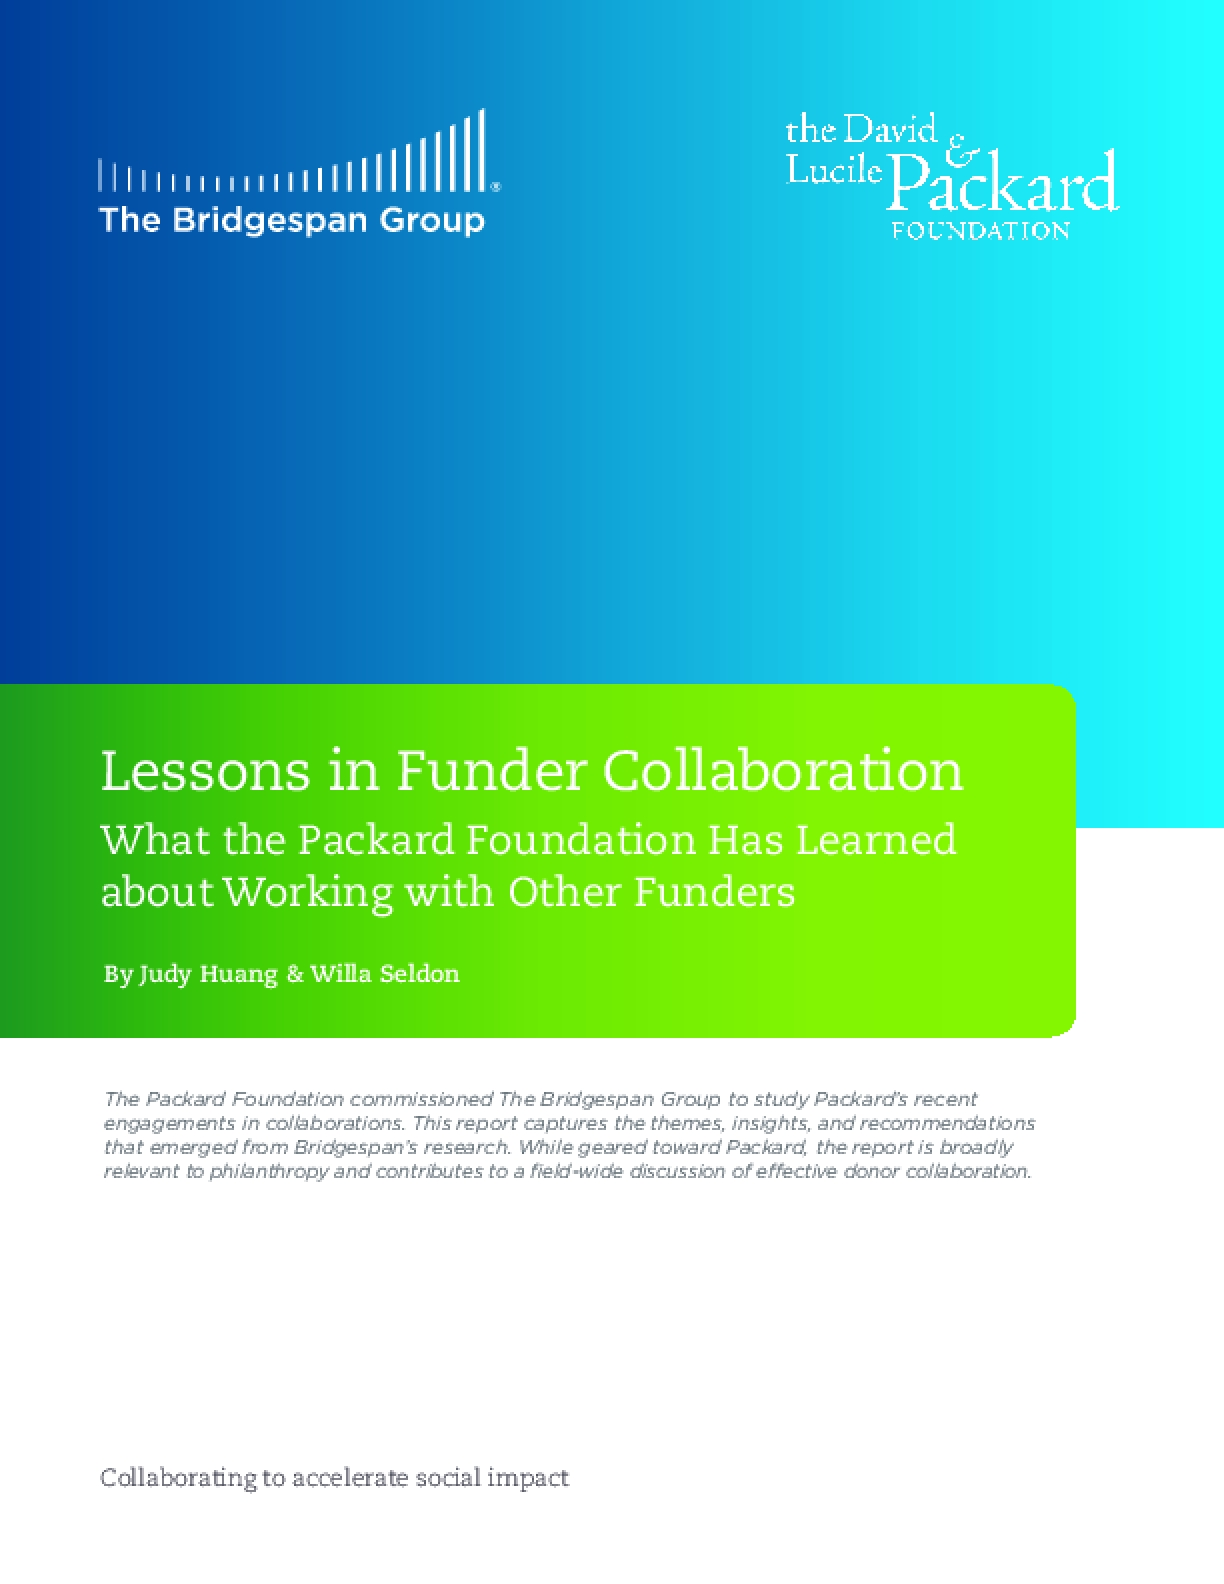 Lessons in Funder Collaboration